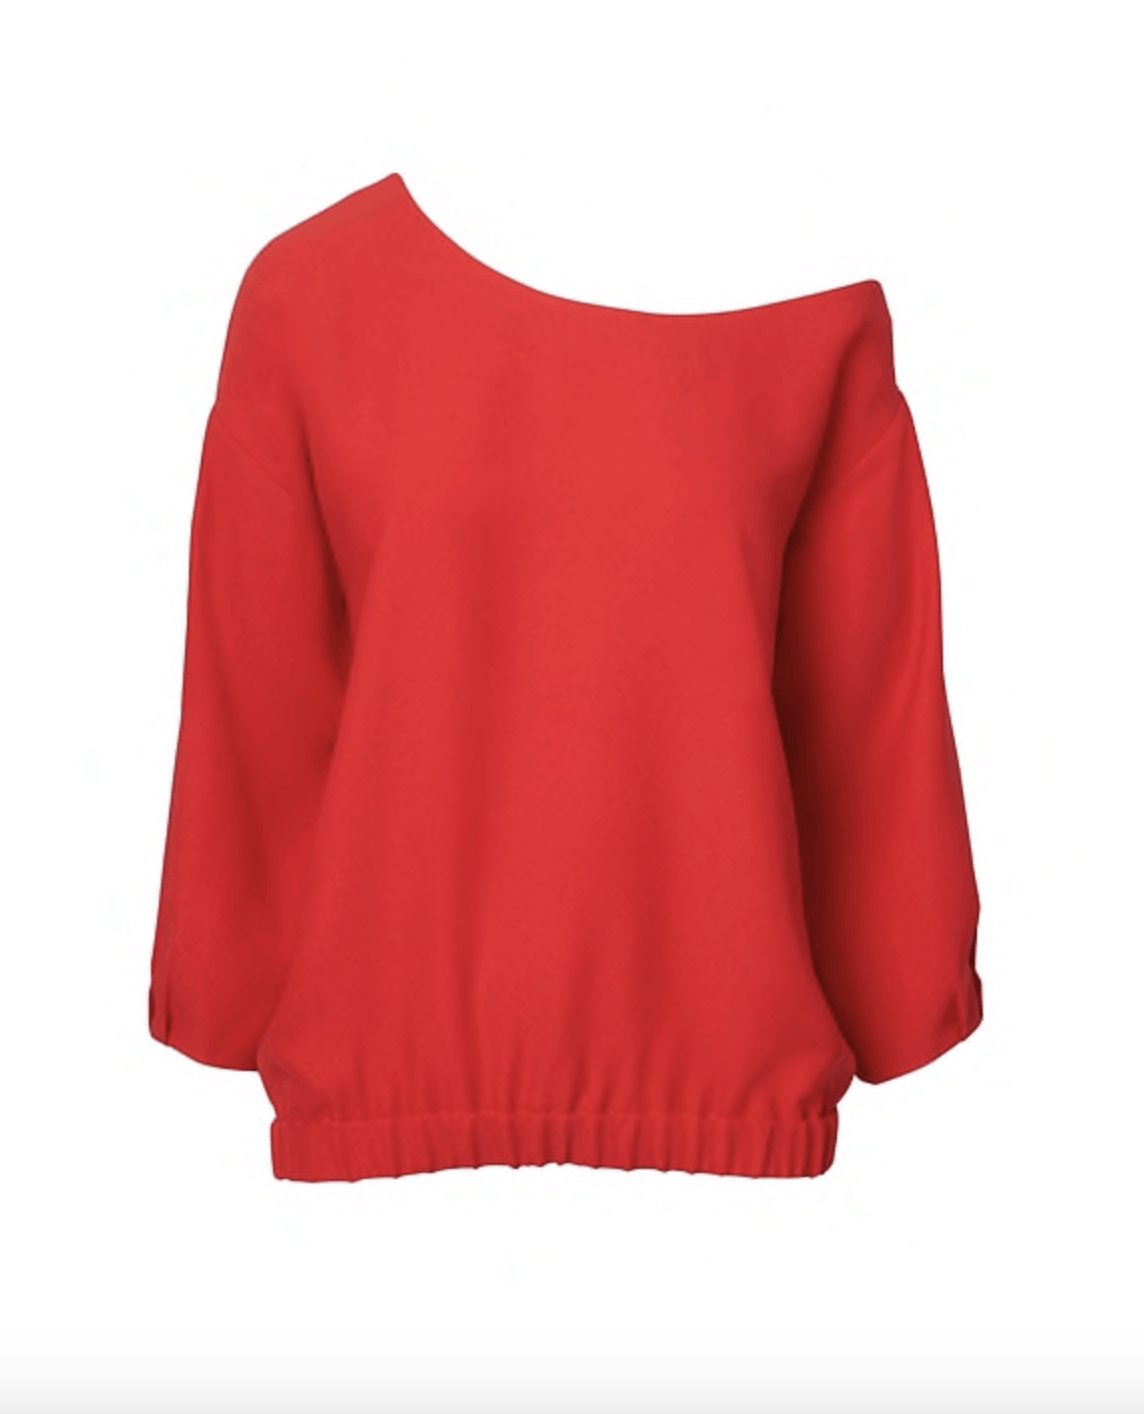 Banana Republic One-Shoulder Blouse in popsicle red